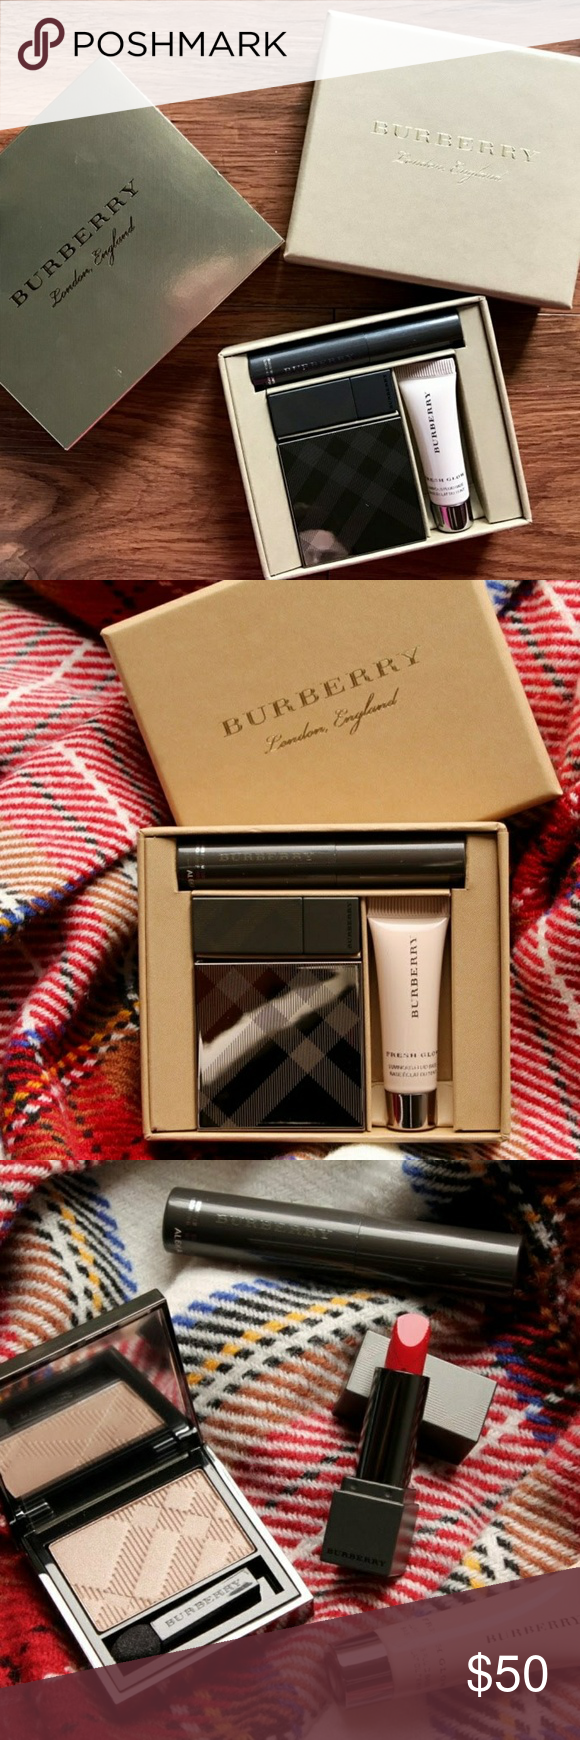 Burberry Pale Barley 102 reviews, photos, ingredients